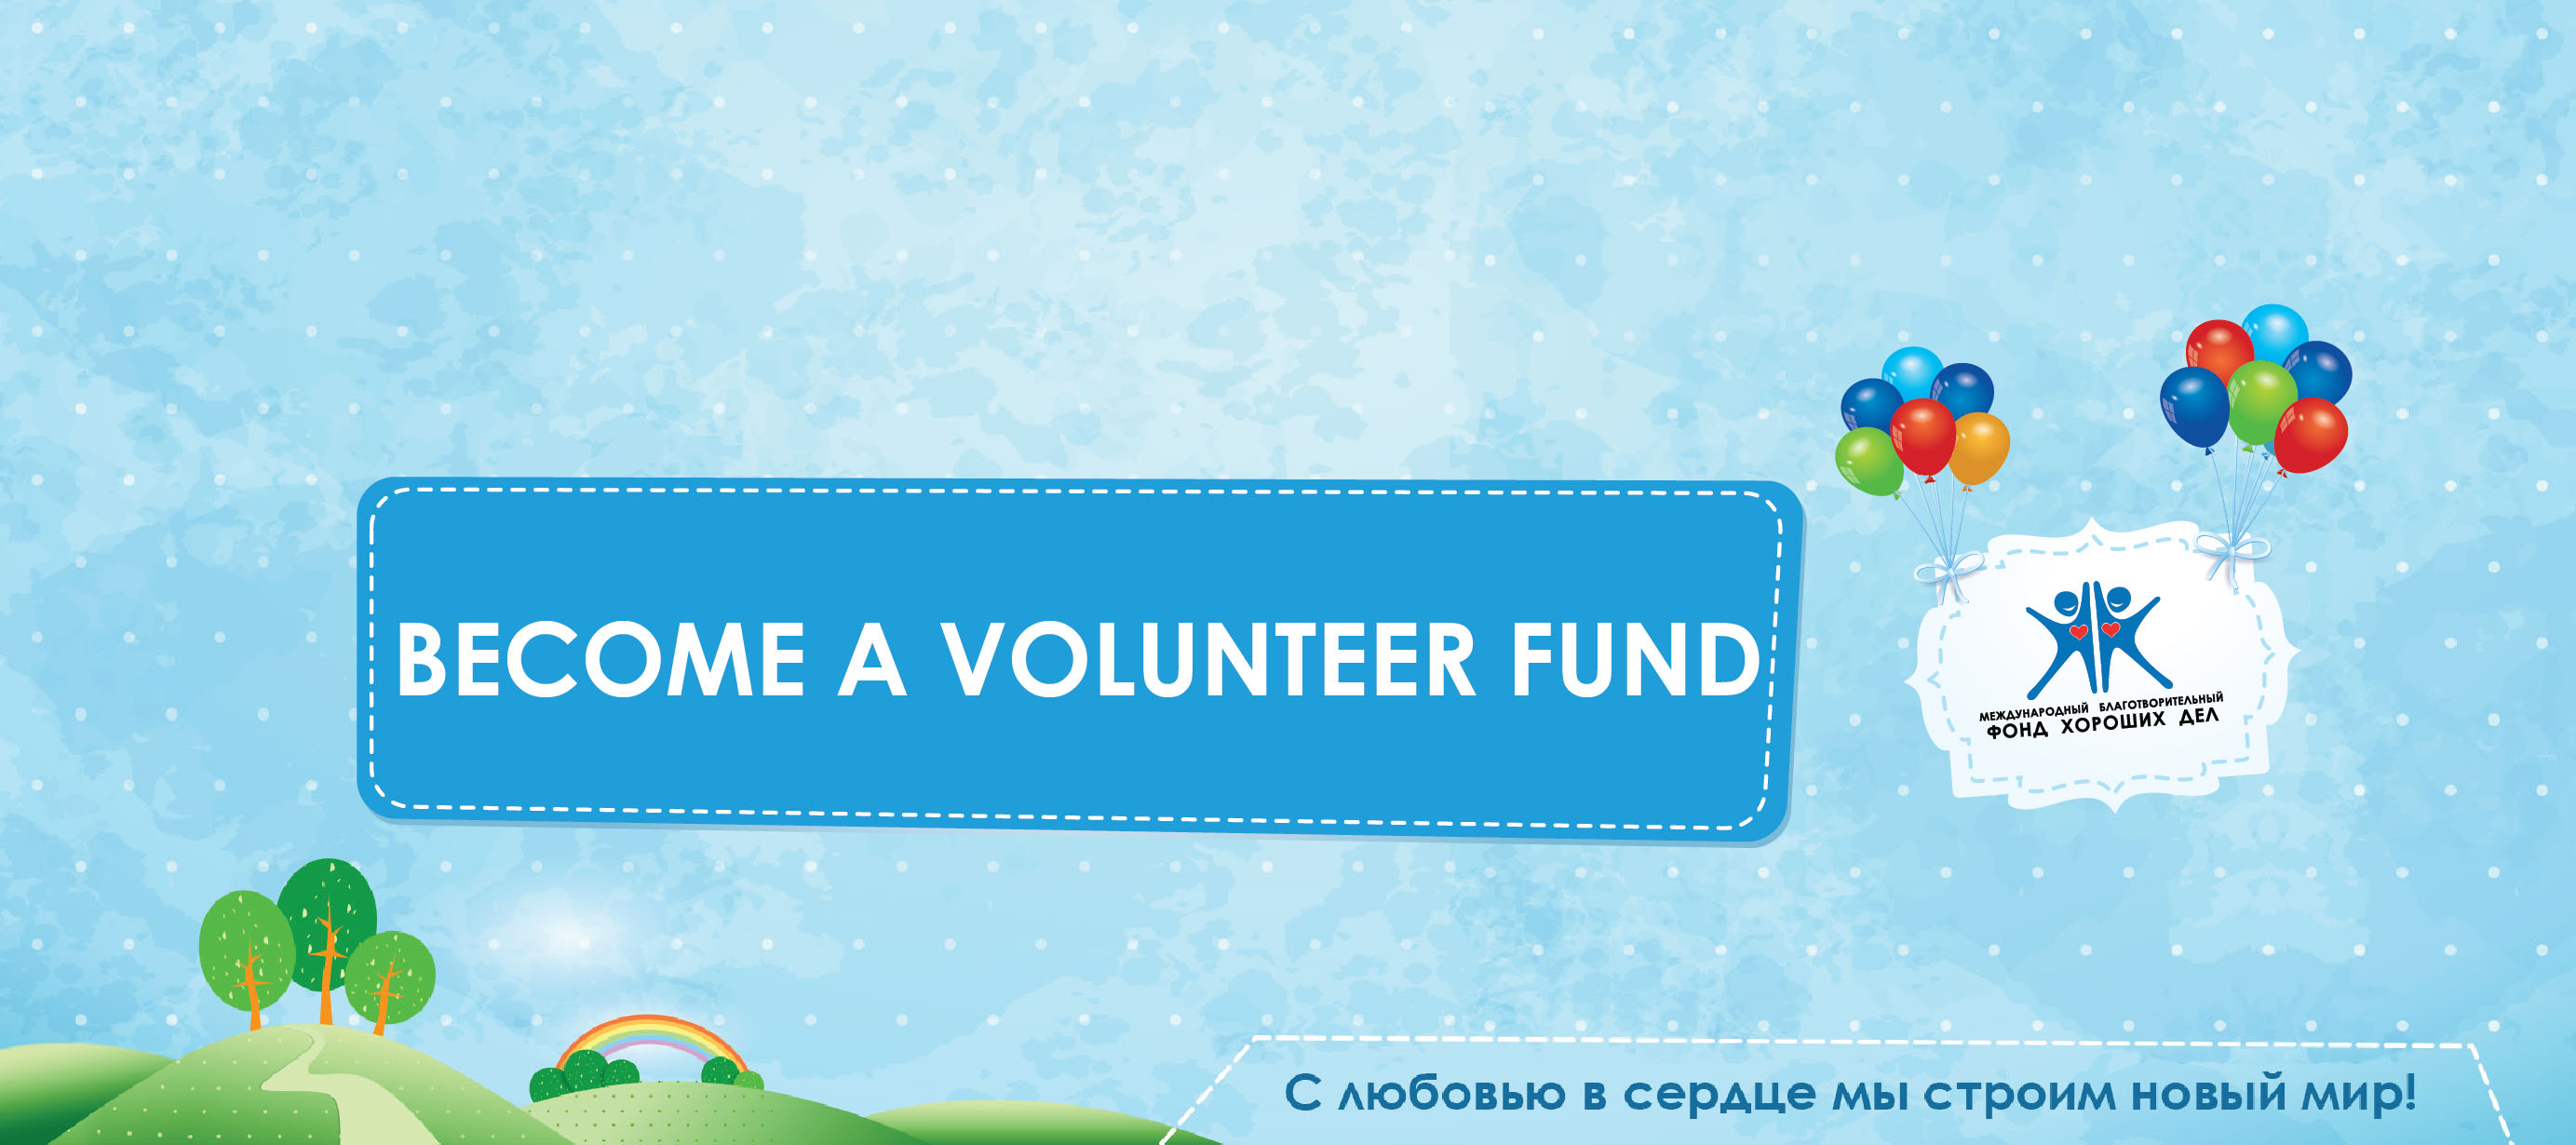 BECOME A VOLUNTEER FUND_1 copy 2